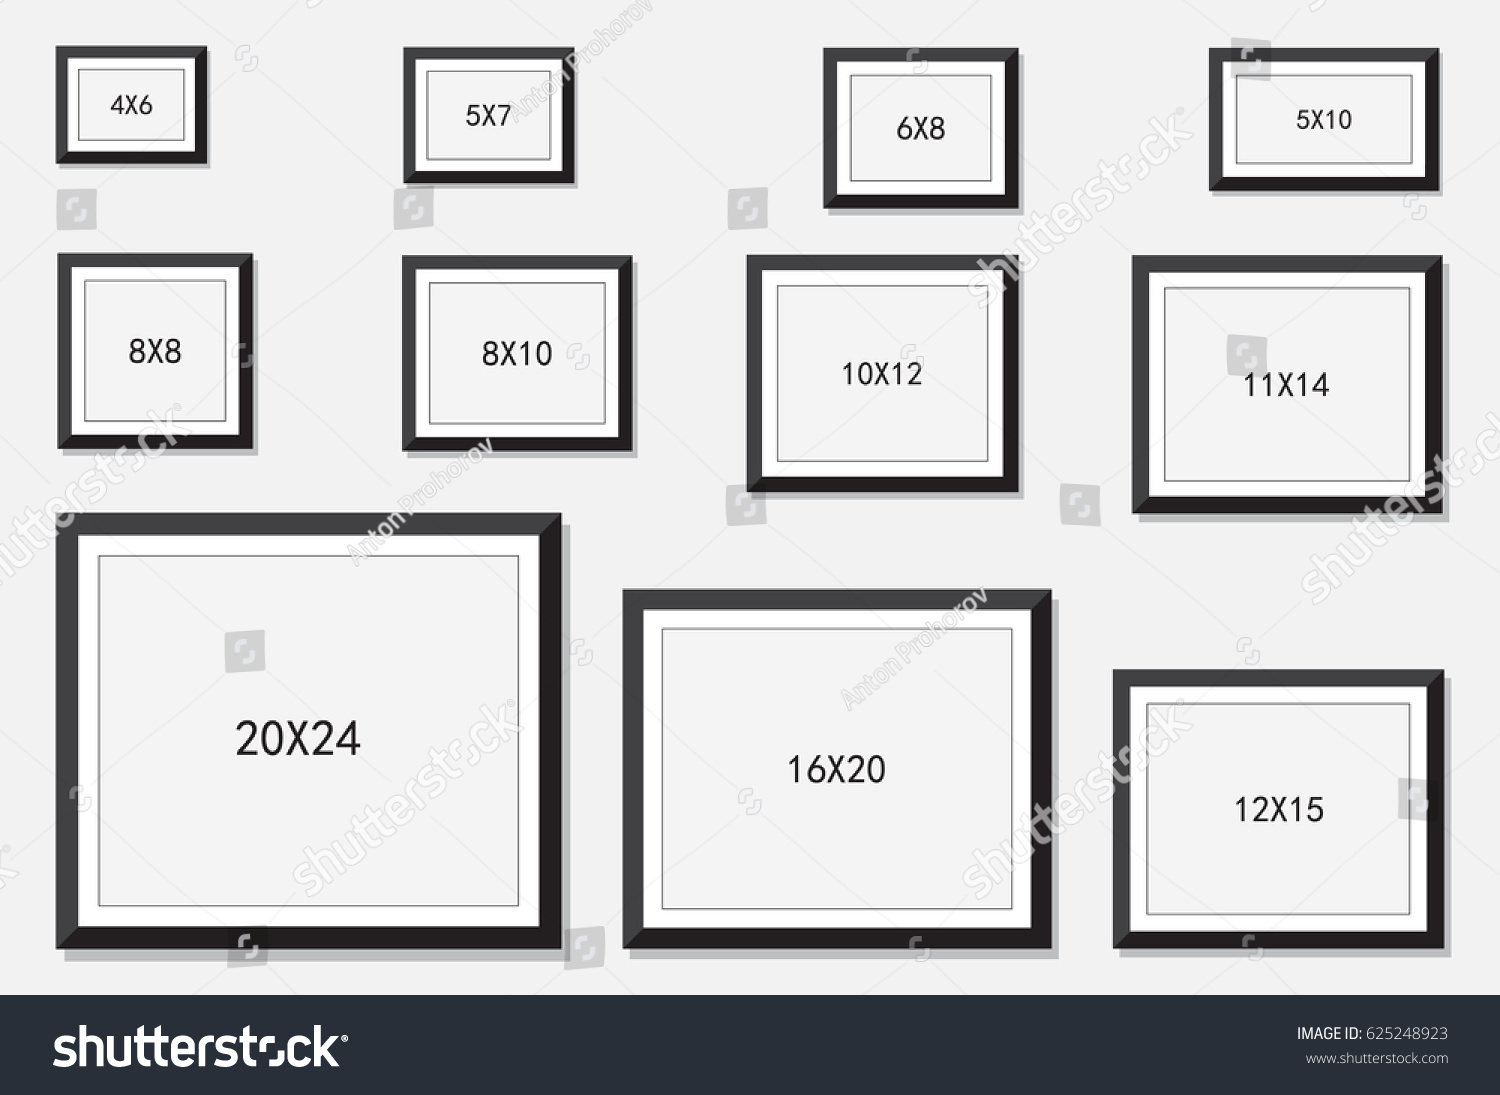 Photo Picture Frame Size Stock Vector 625248923 - Shutterstock